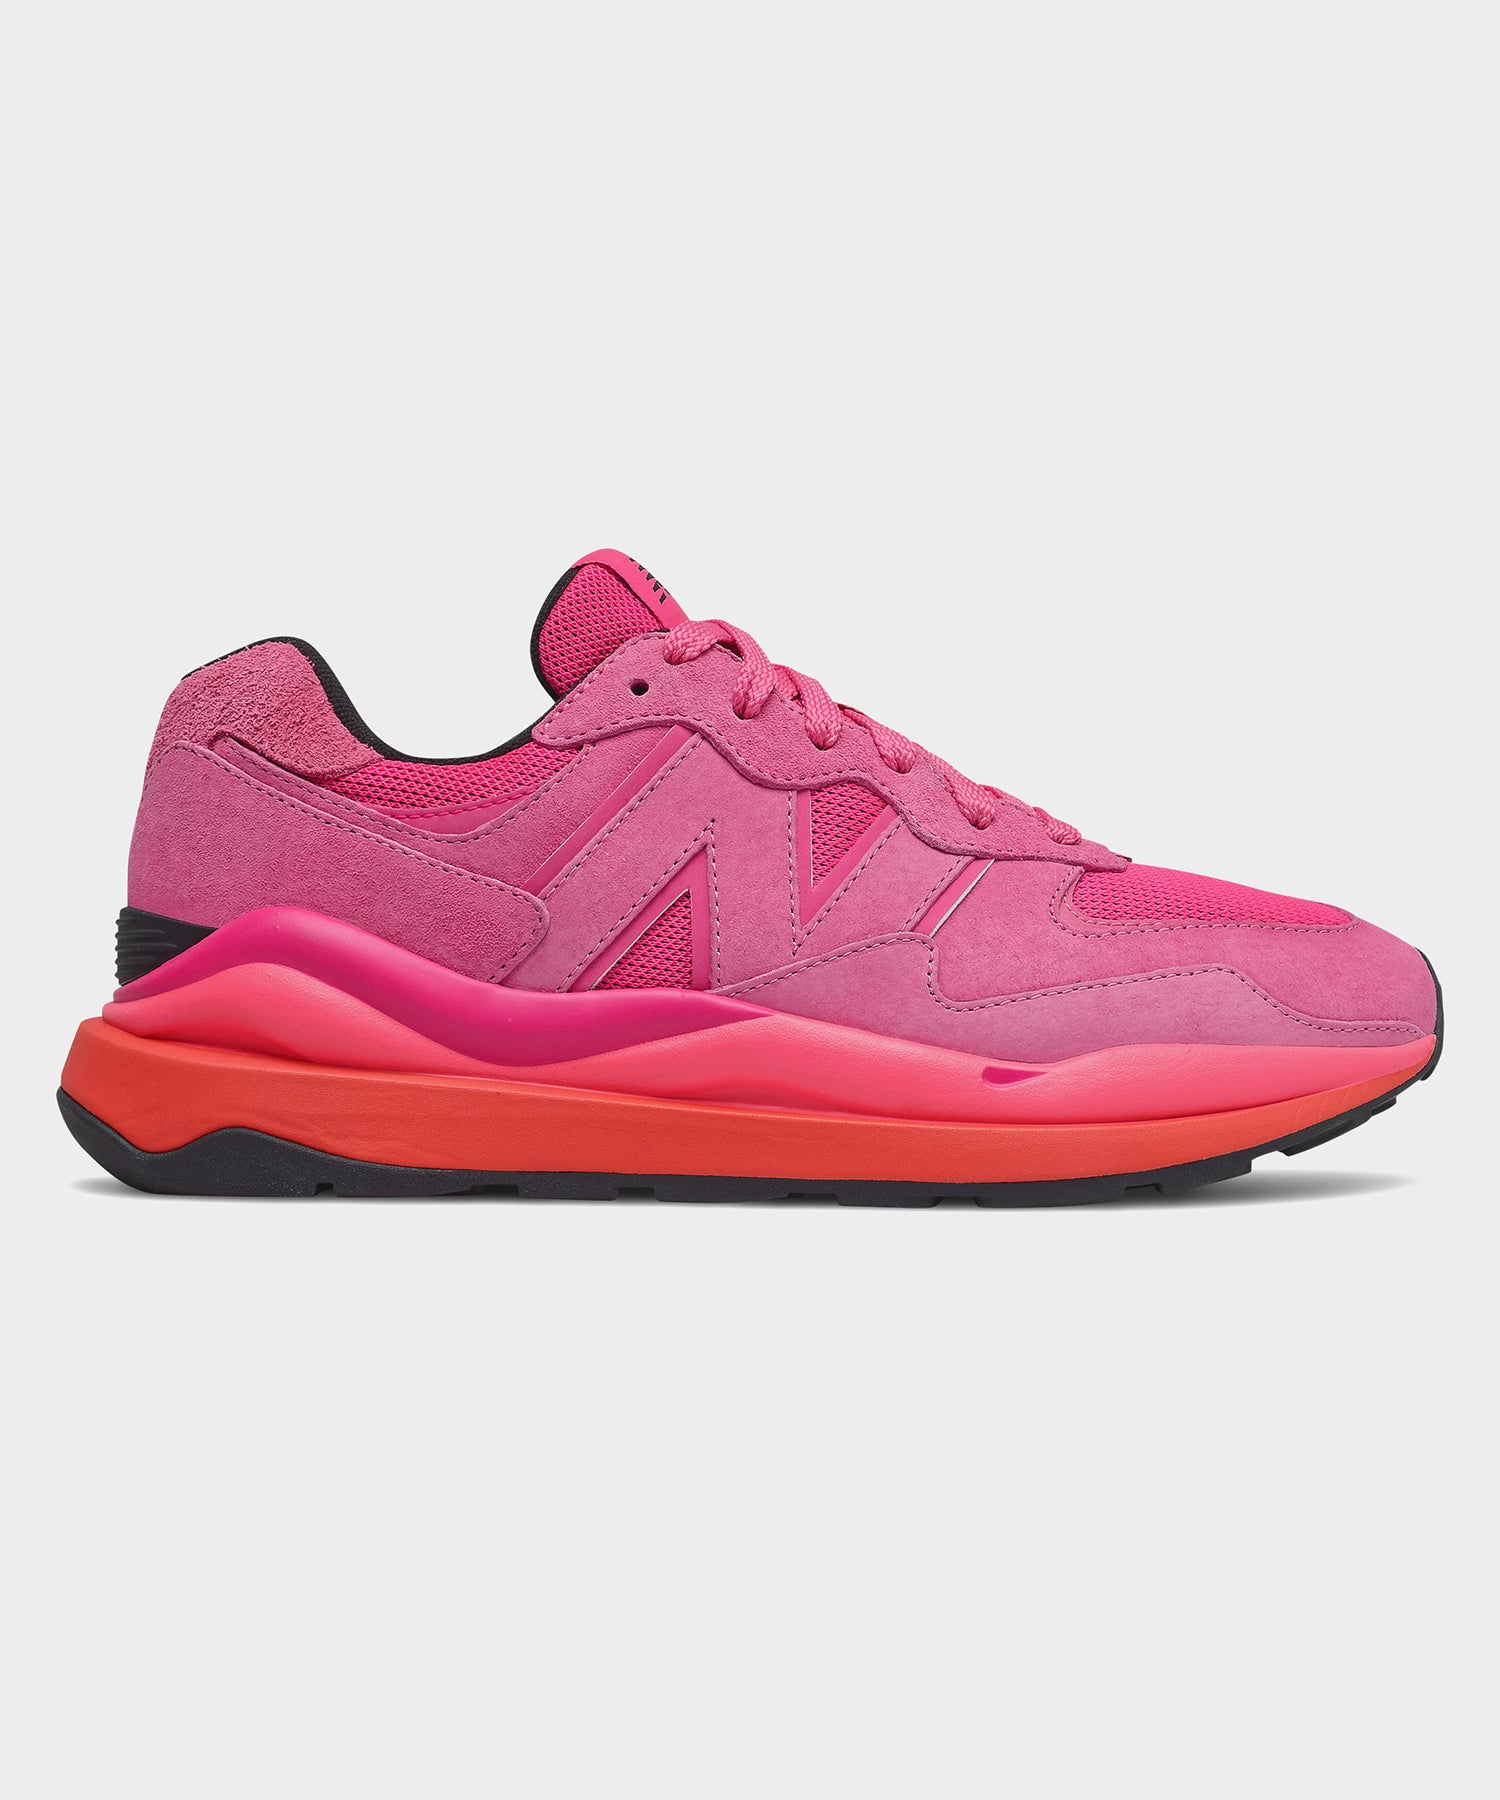 New Balance 57/40 Valentine's Day in Pink